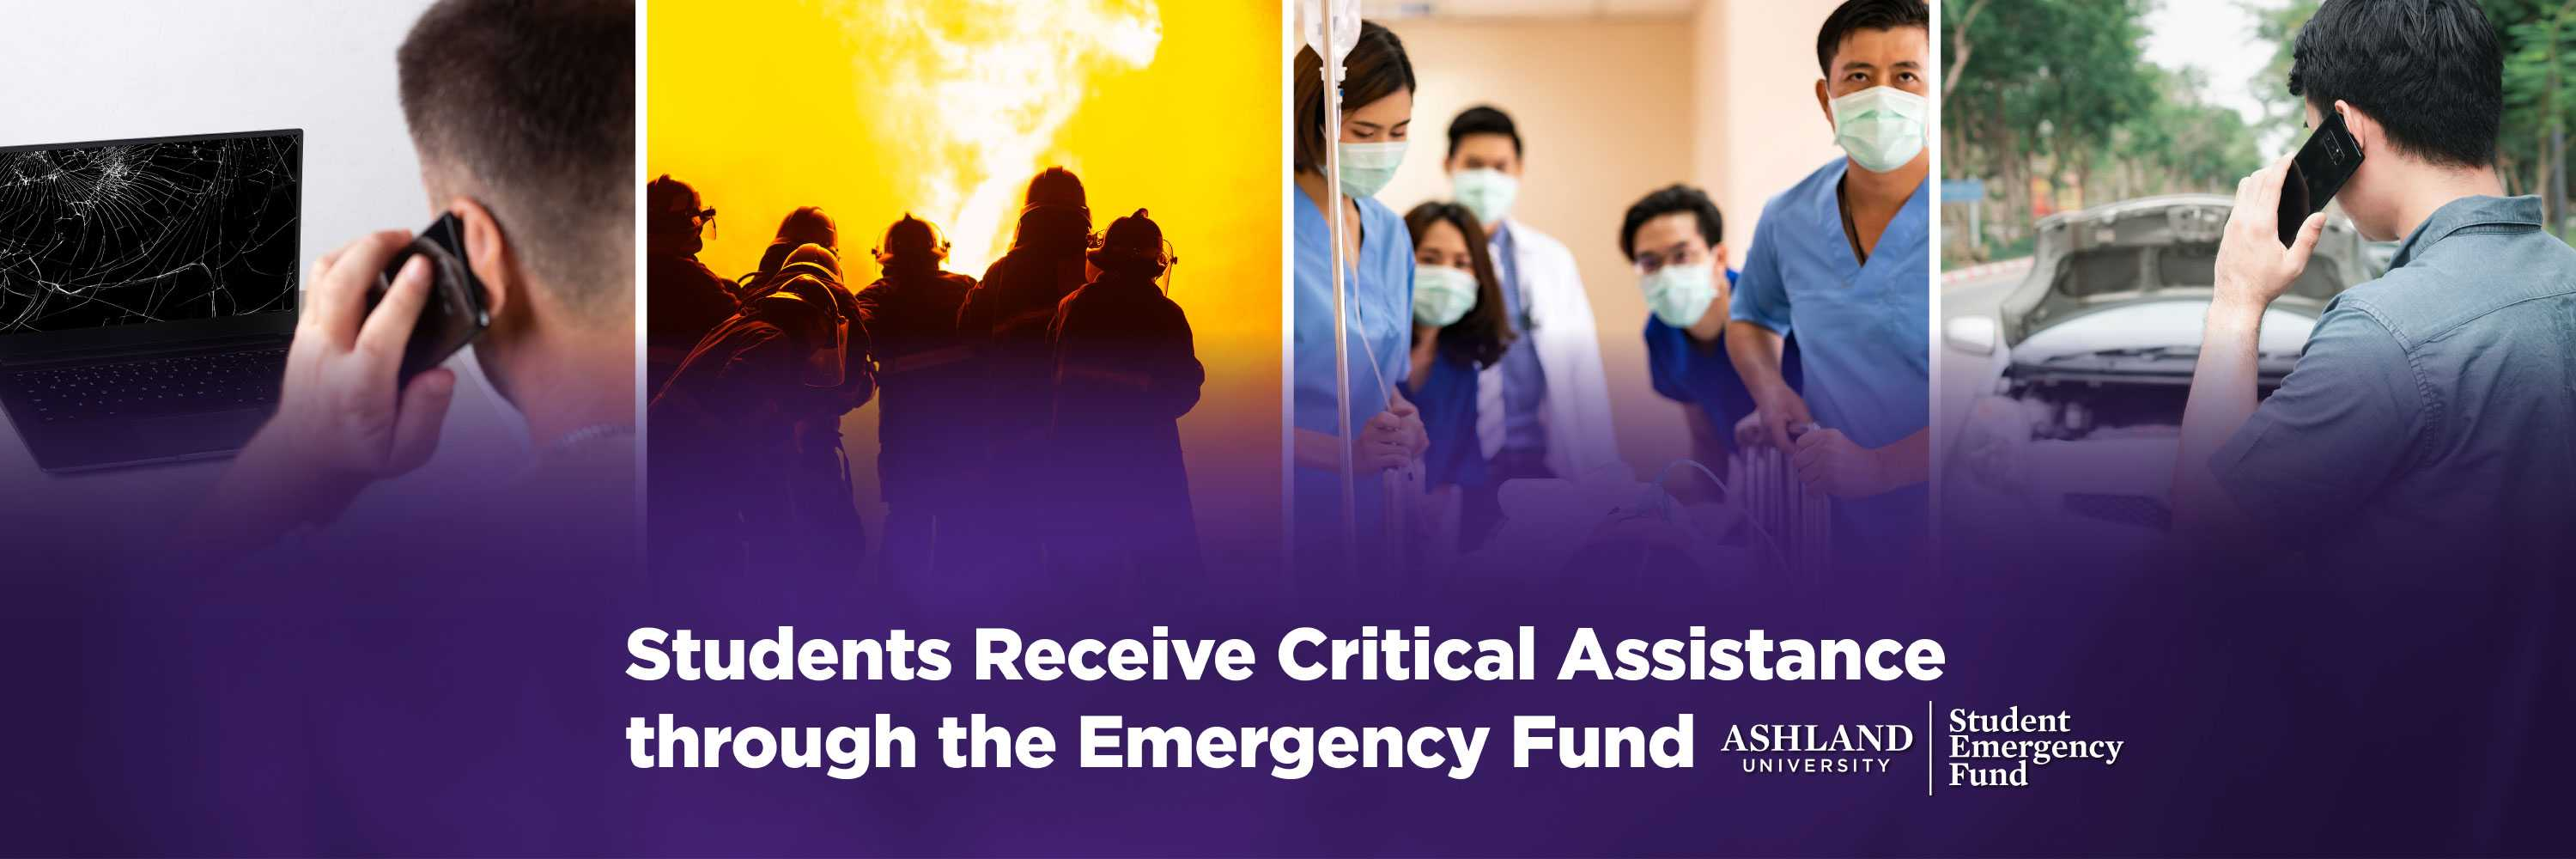 Students receive critical assistance through the Emergency Fund